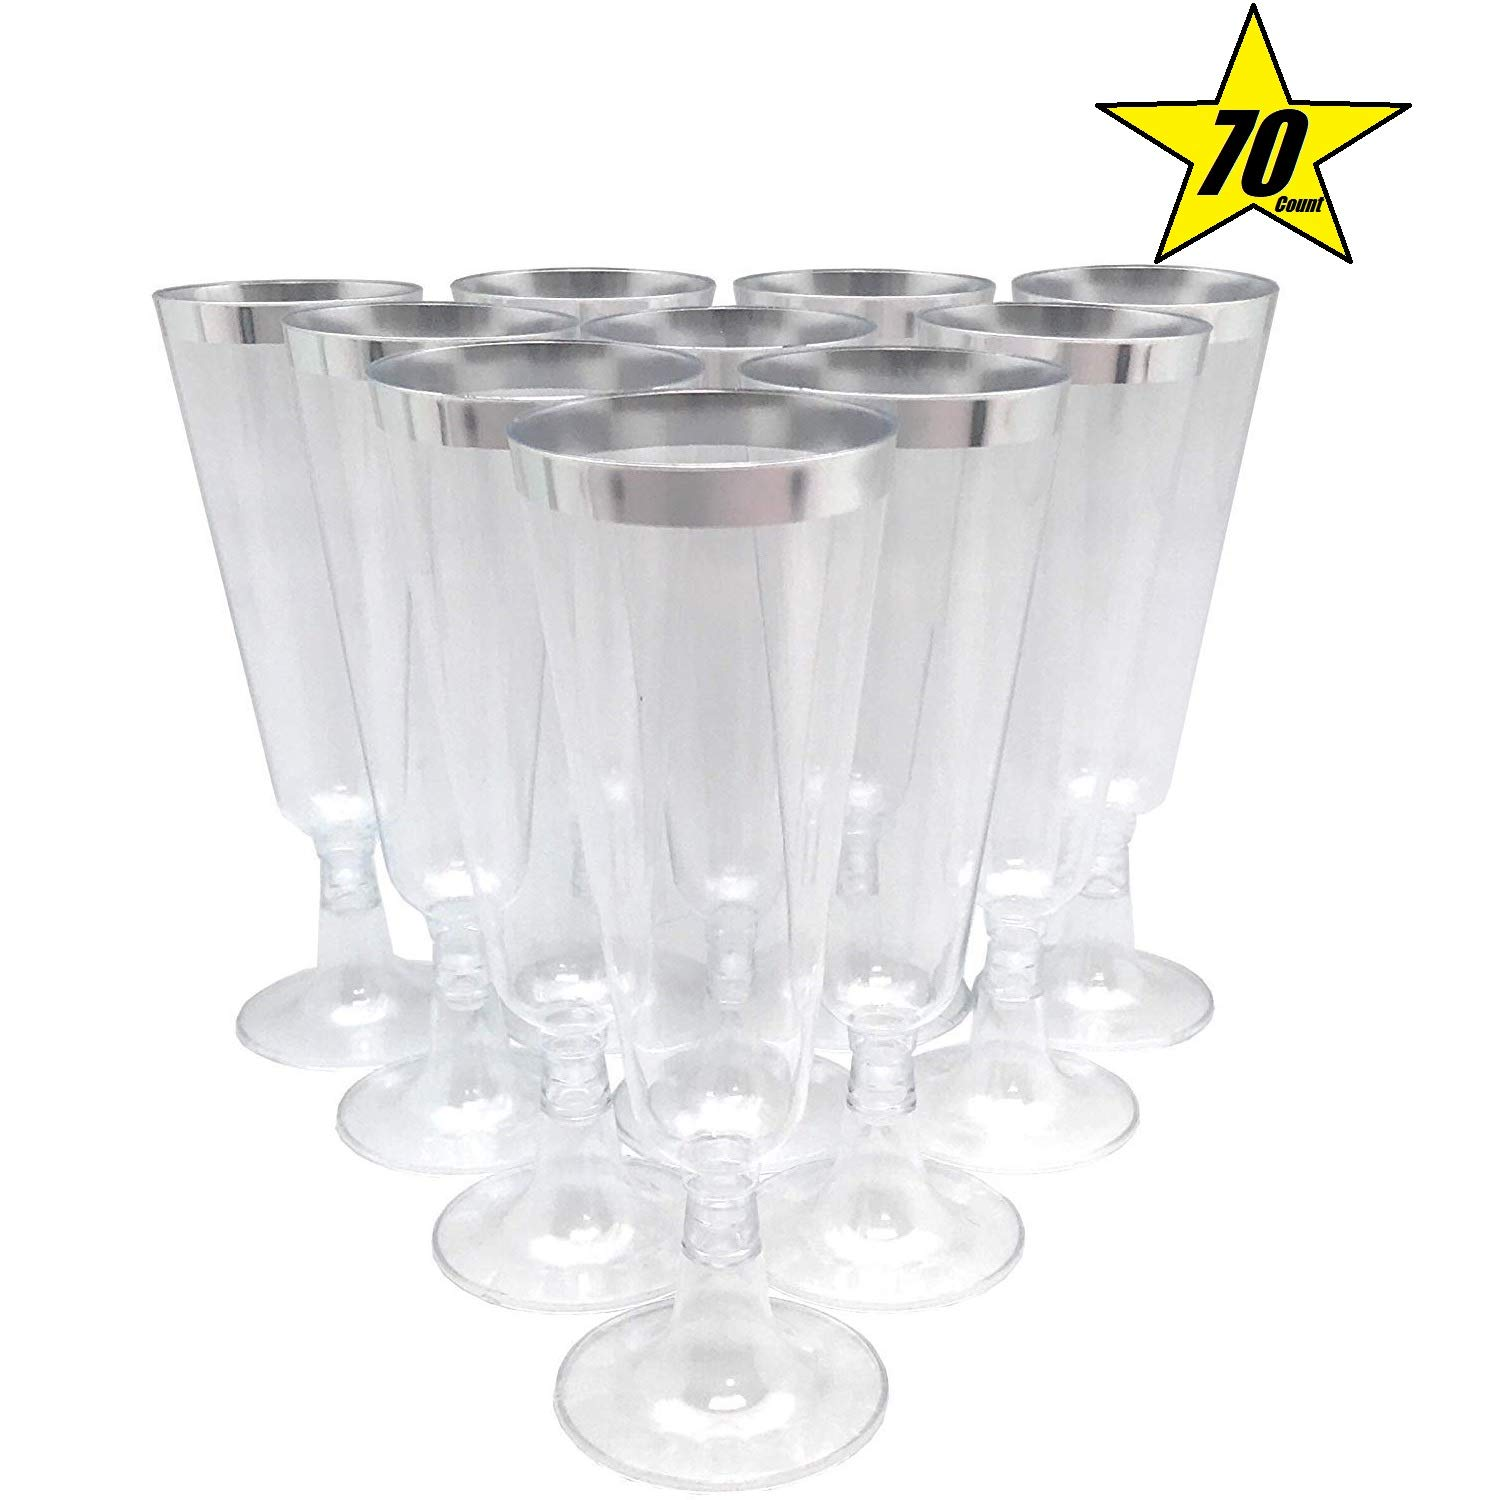 70pc Glitter Plastic Classicware Glass Like Champagne Wedding Parties Toasting Flutes Party Cocktail Cups (Silver Rimmed)